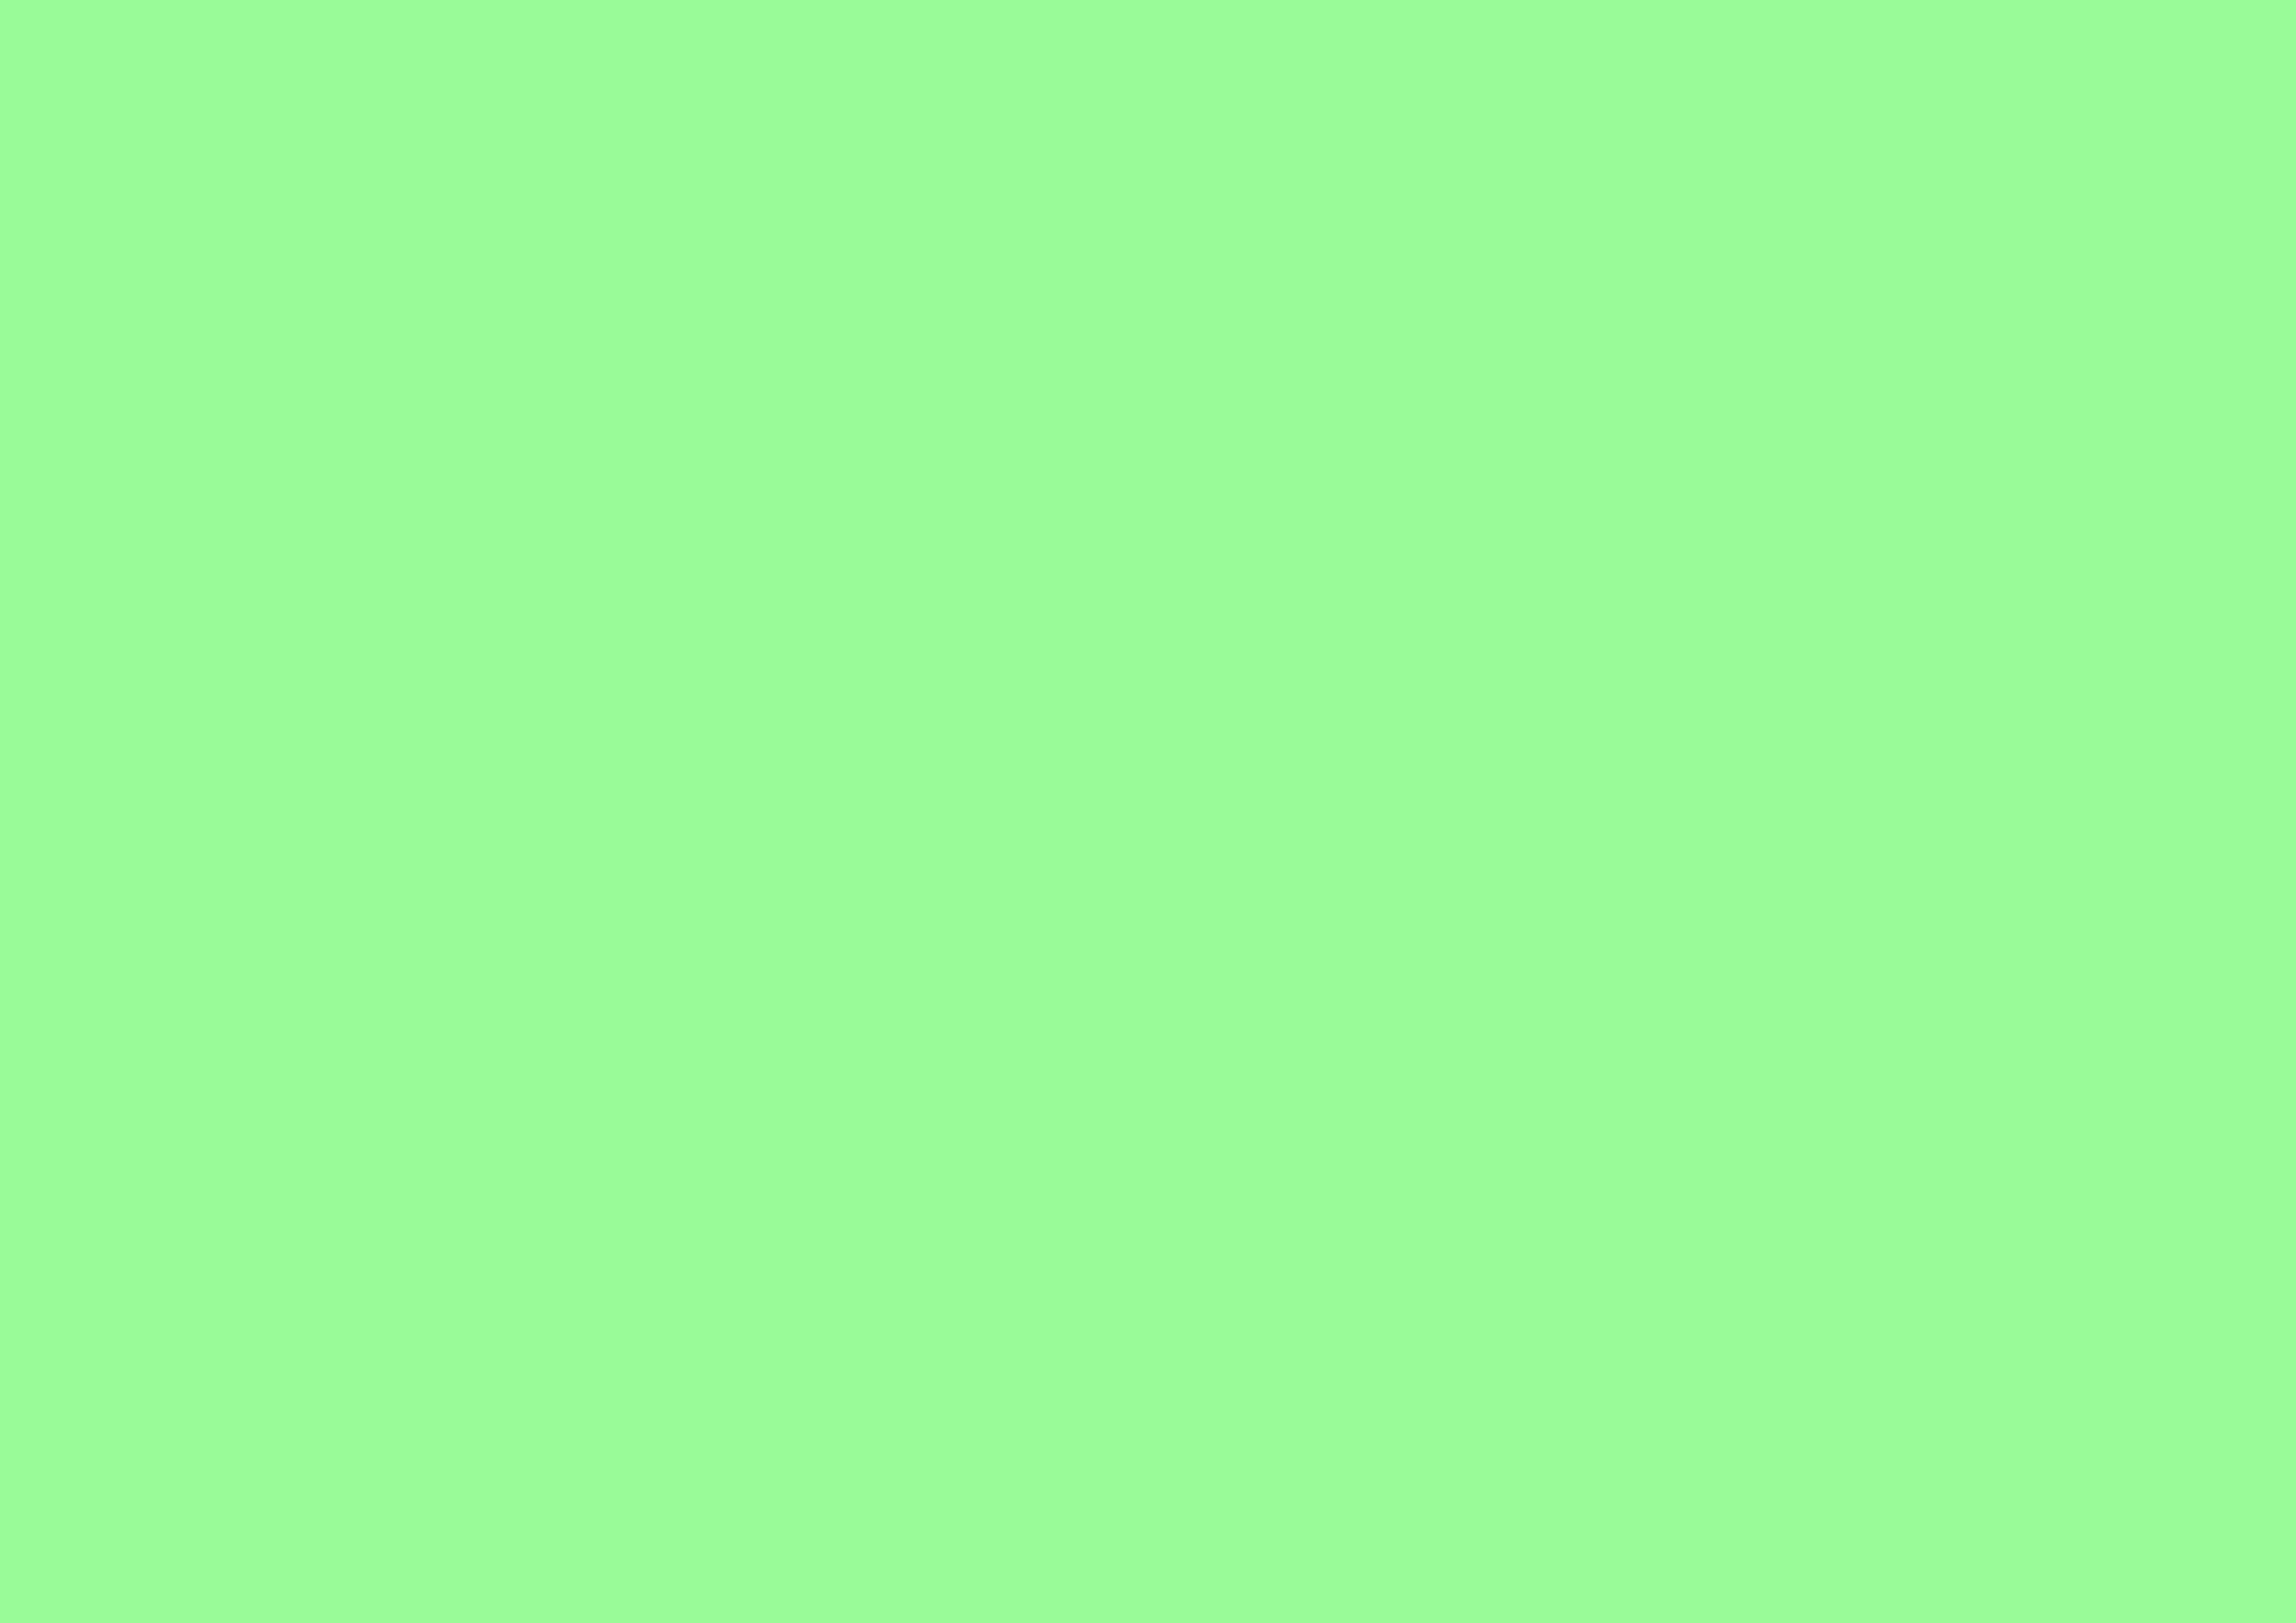 3508x2480 Pale Green Solid Color Background